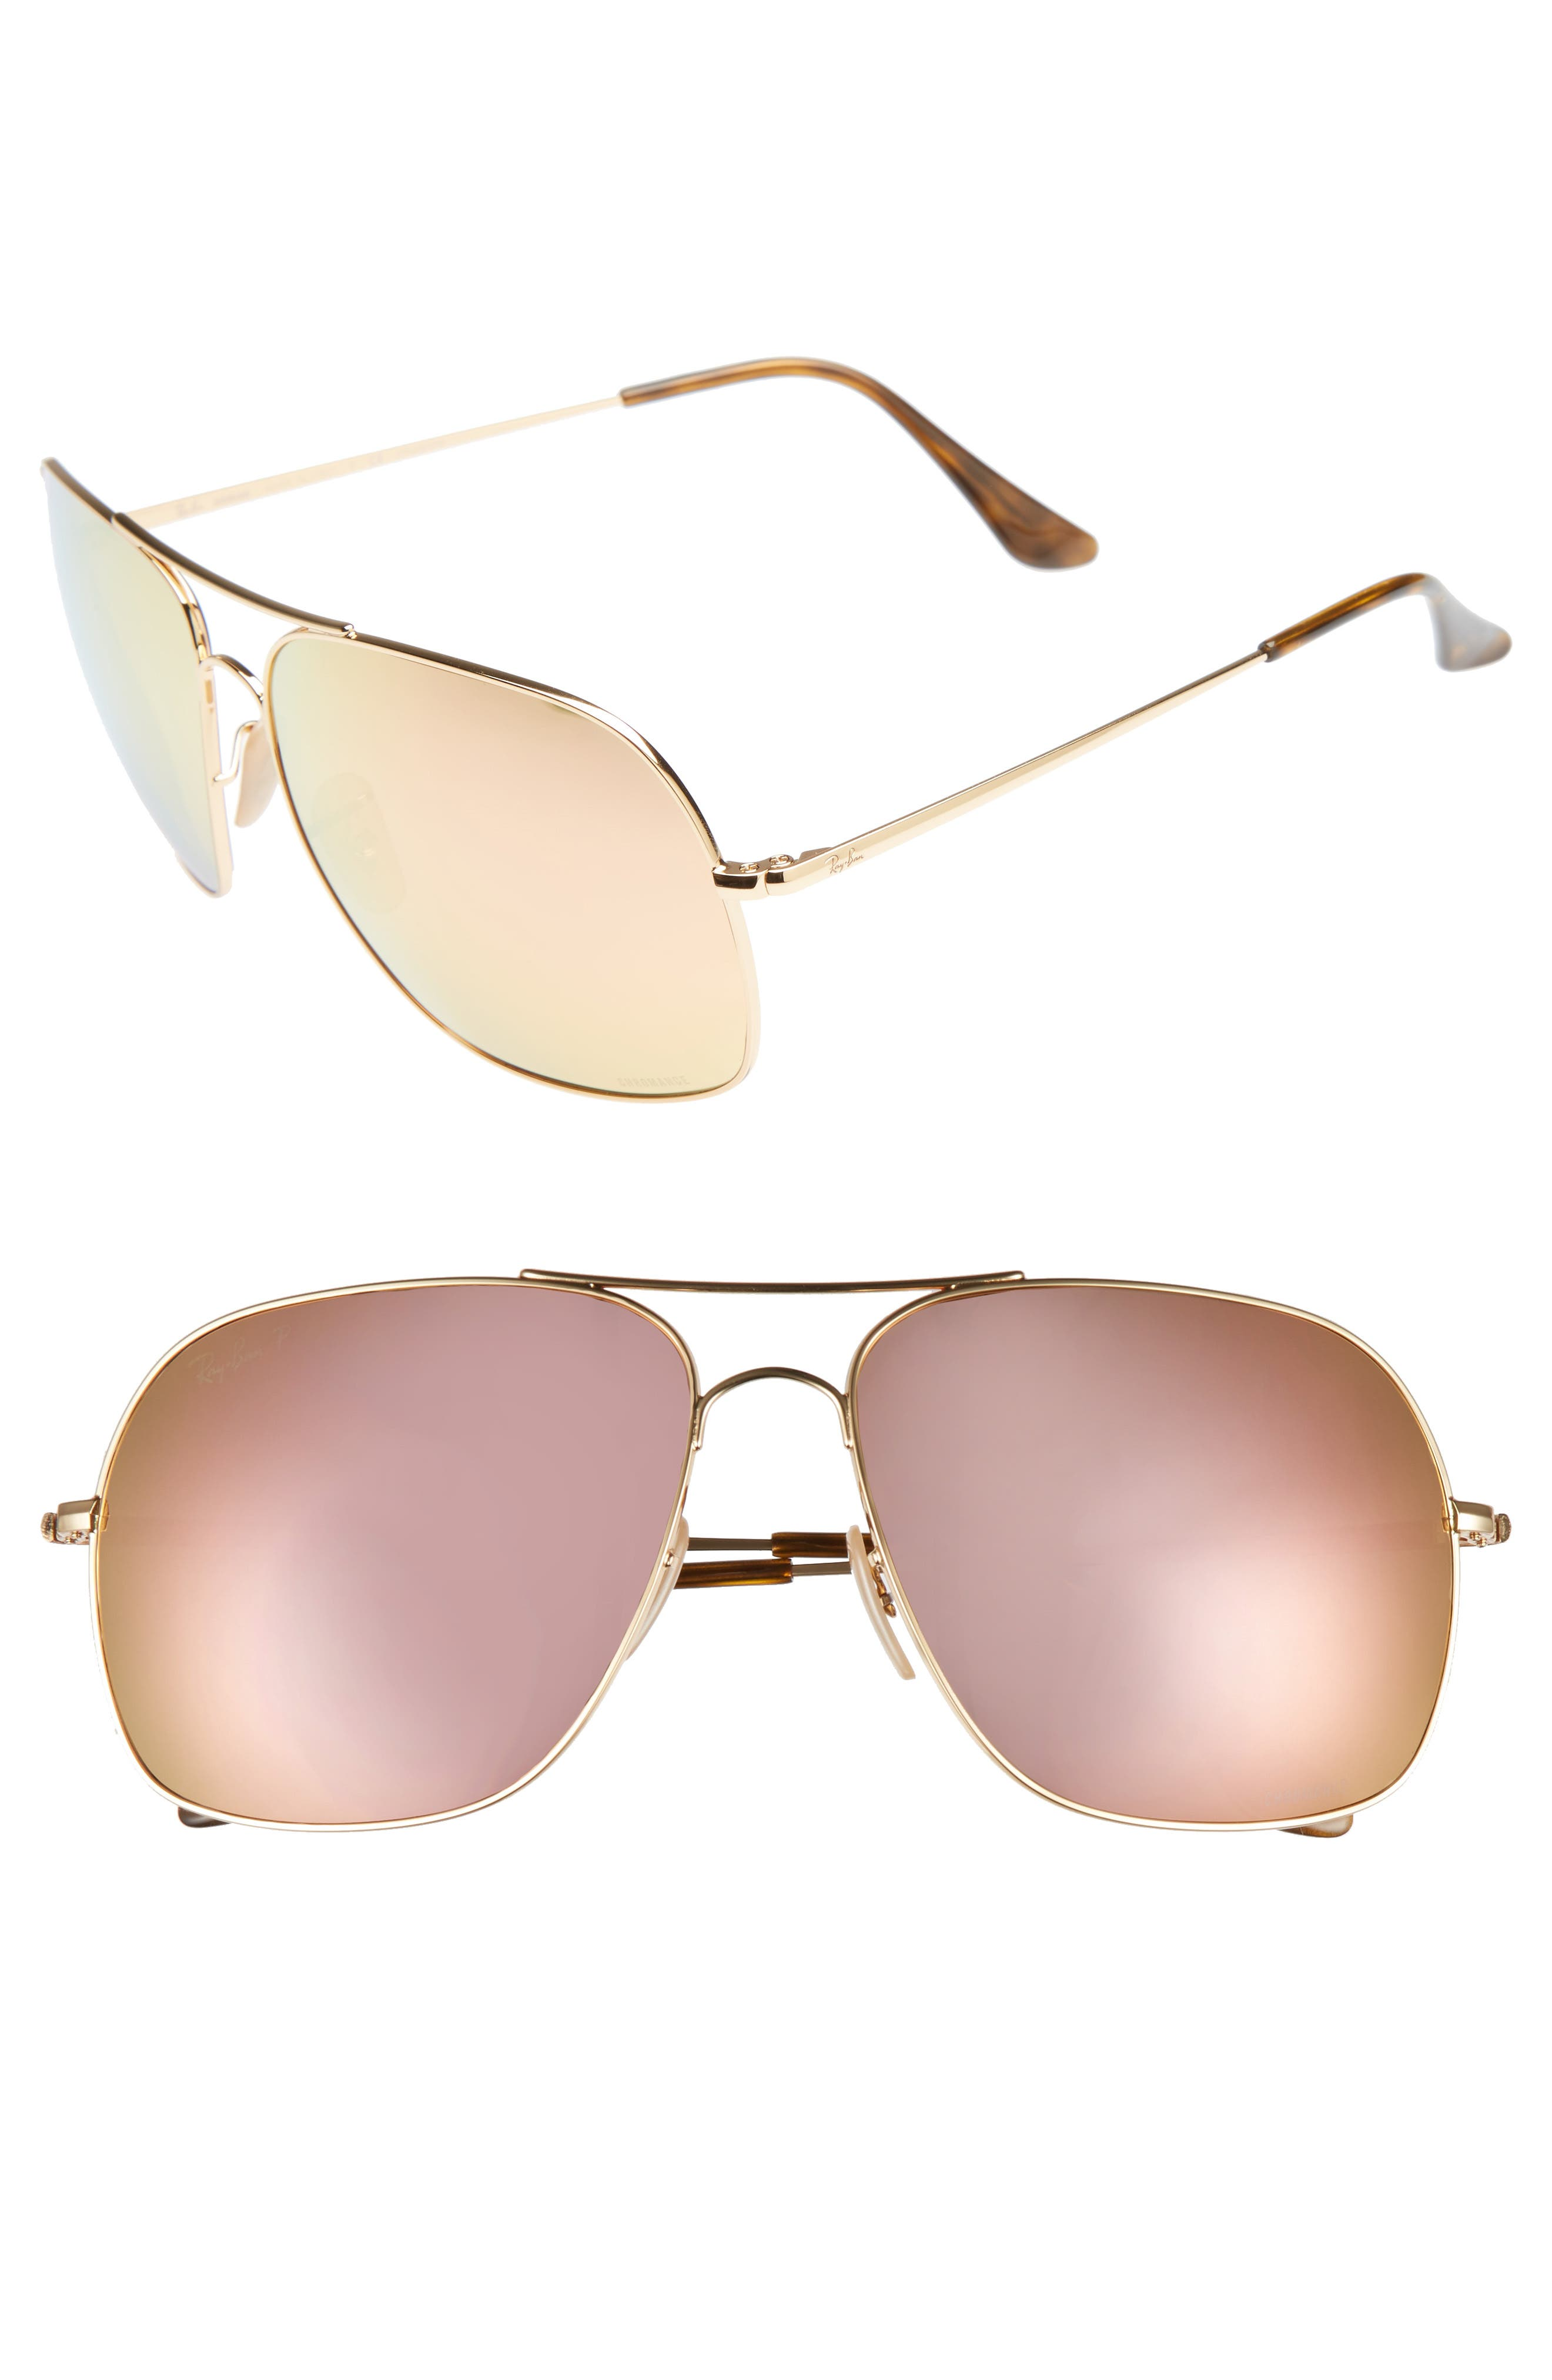 61mm Mirrored Lens Polarized Aviator Sunglasses,                             Main thumbnail 2, color,